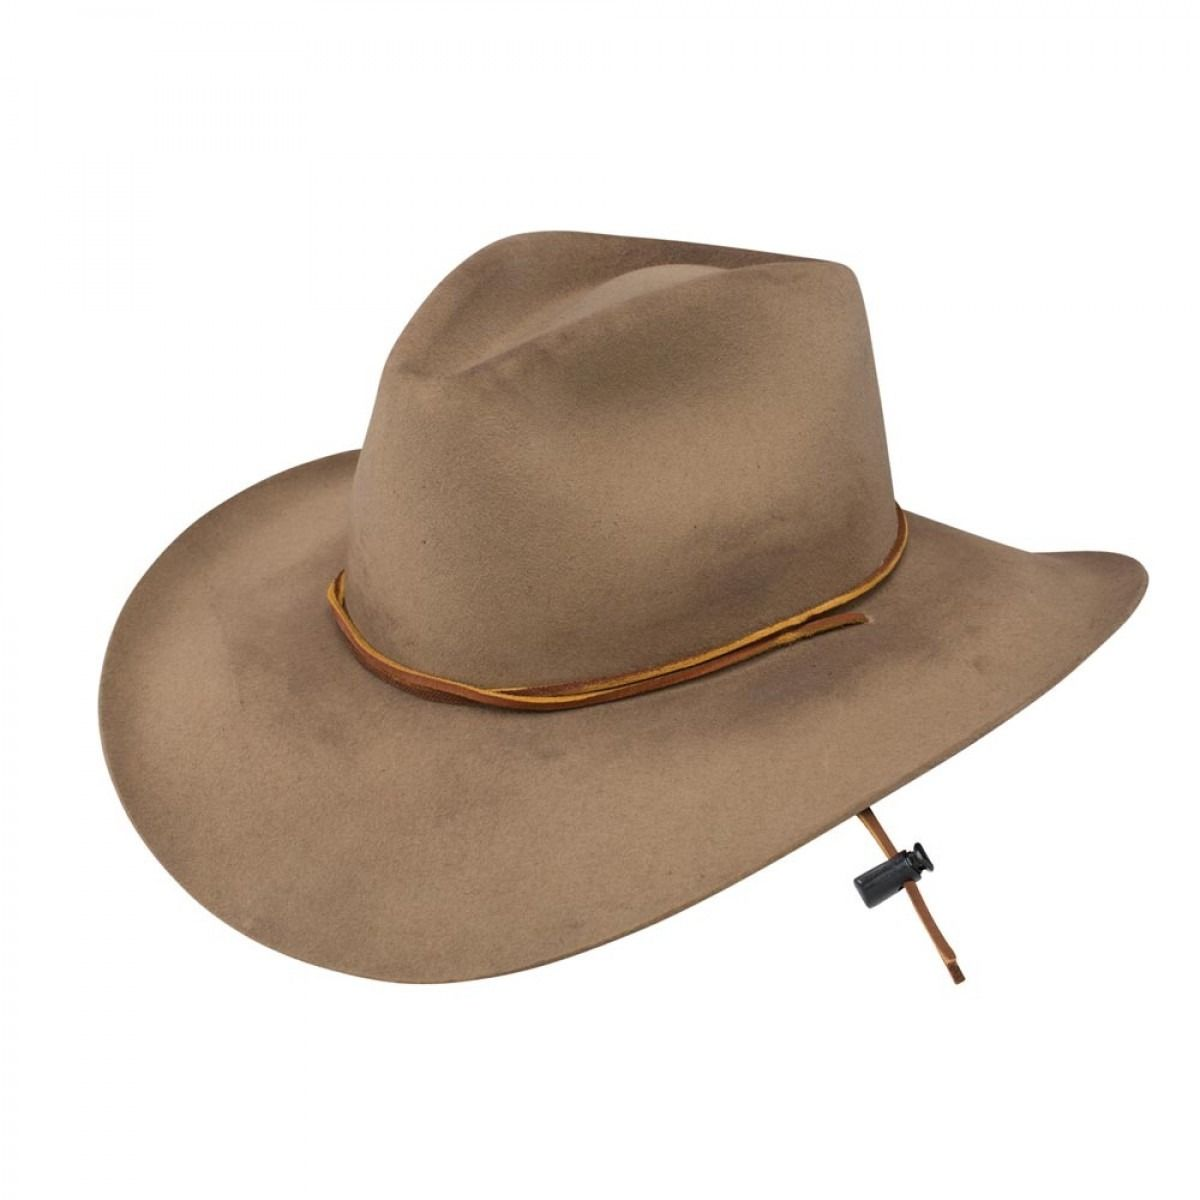 Stetson Kelly Distressed Soft Wool Outback Hat Cowboy Hats Outback Hat Stetson Cowboy Hats